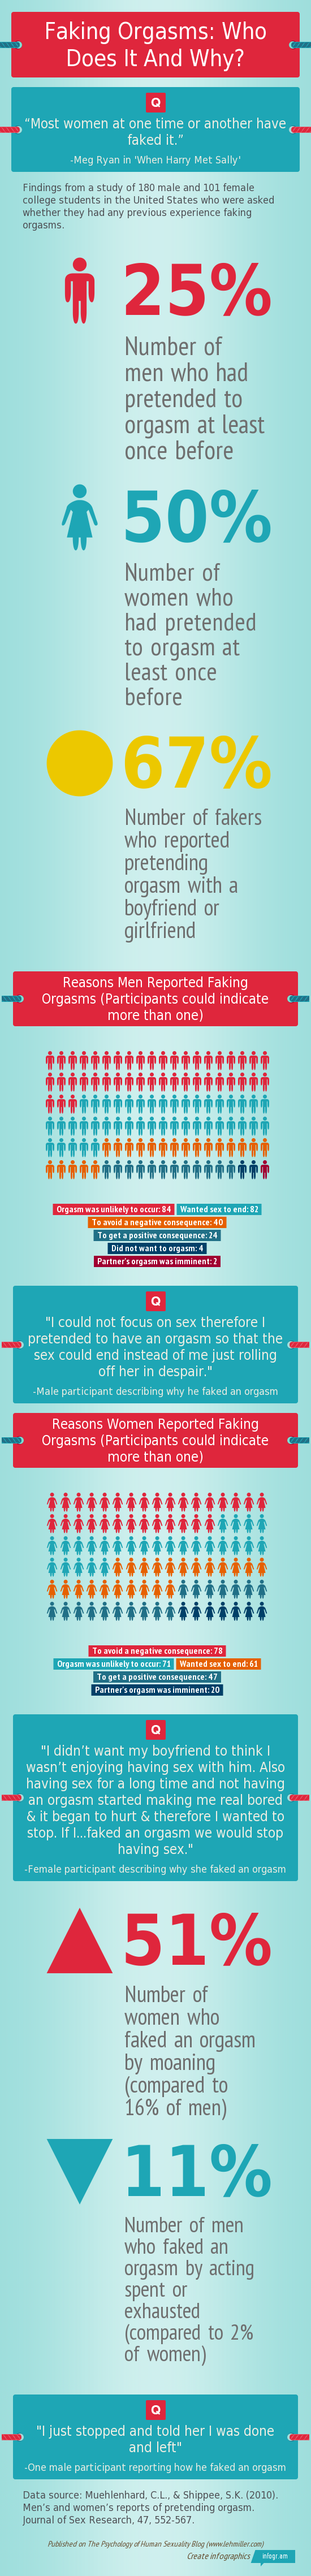 Infographic explaining how frequently people fake orgasms and why they do it